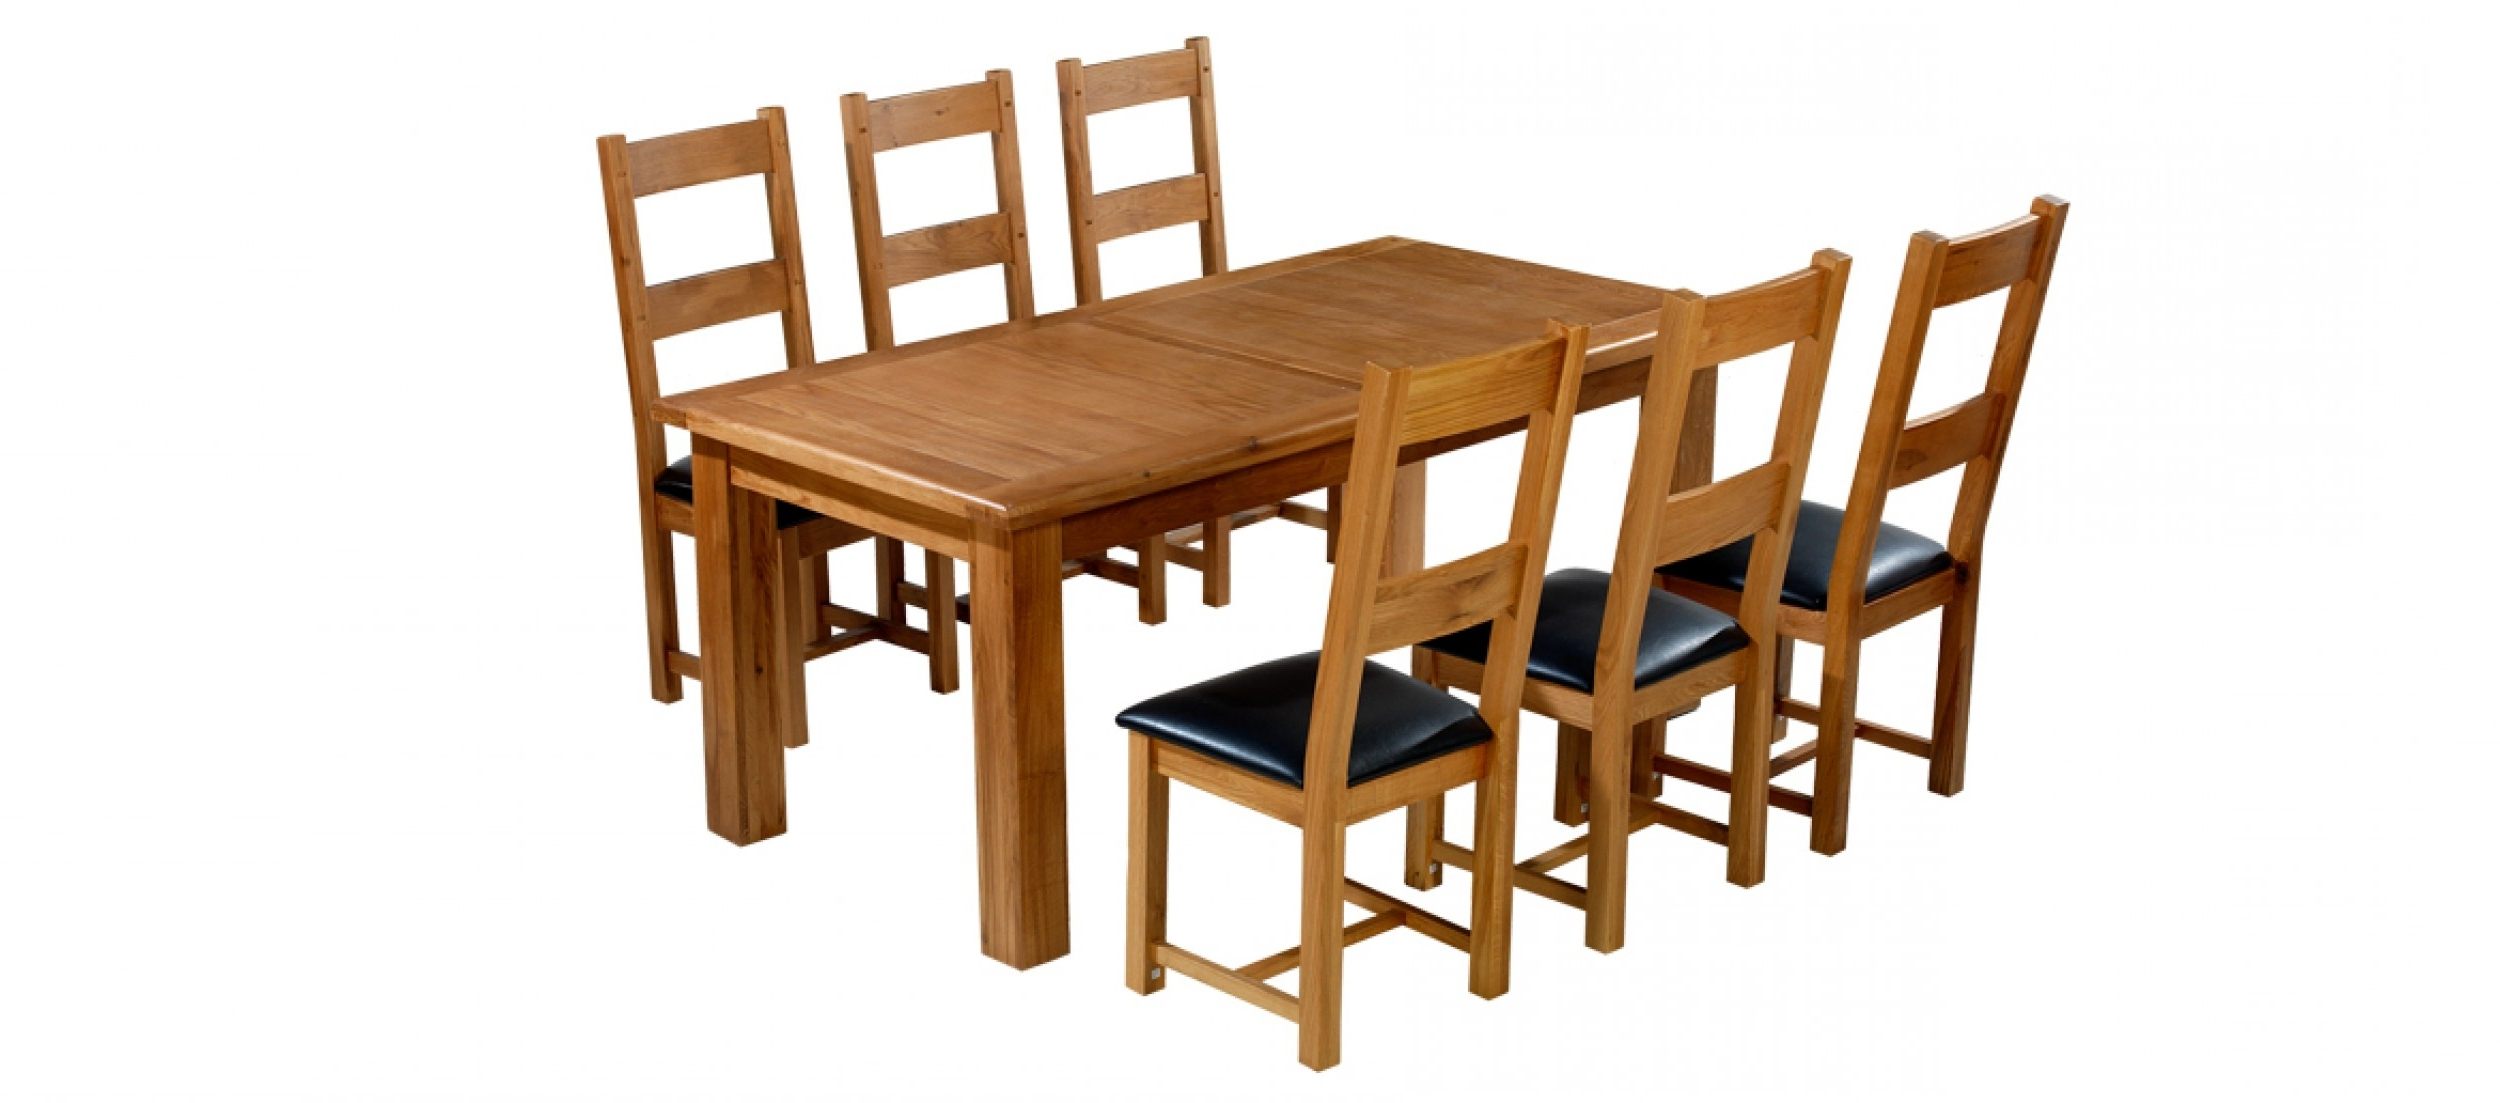 Quercus Throughout Extending Dining Tables And 6 Chairs (Gallery 7 of 25)